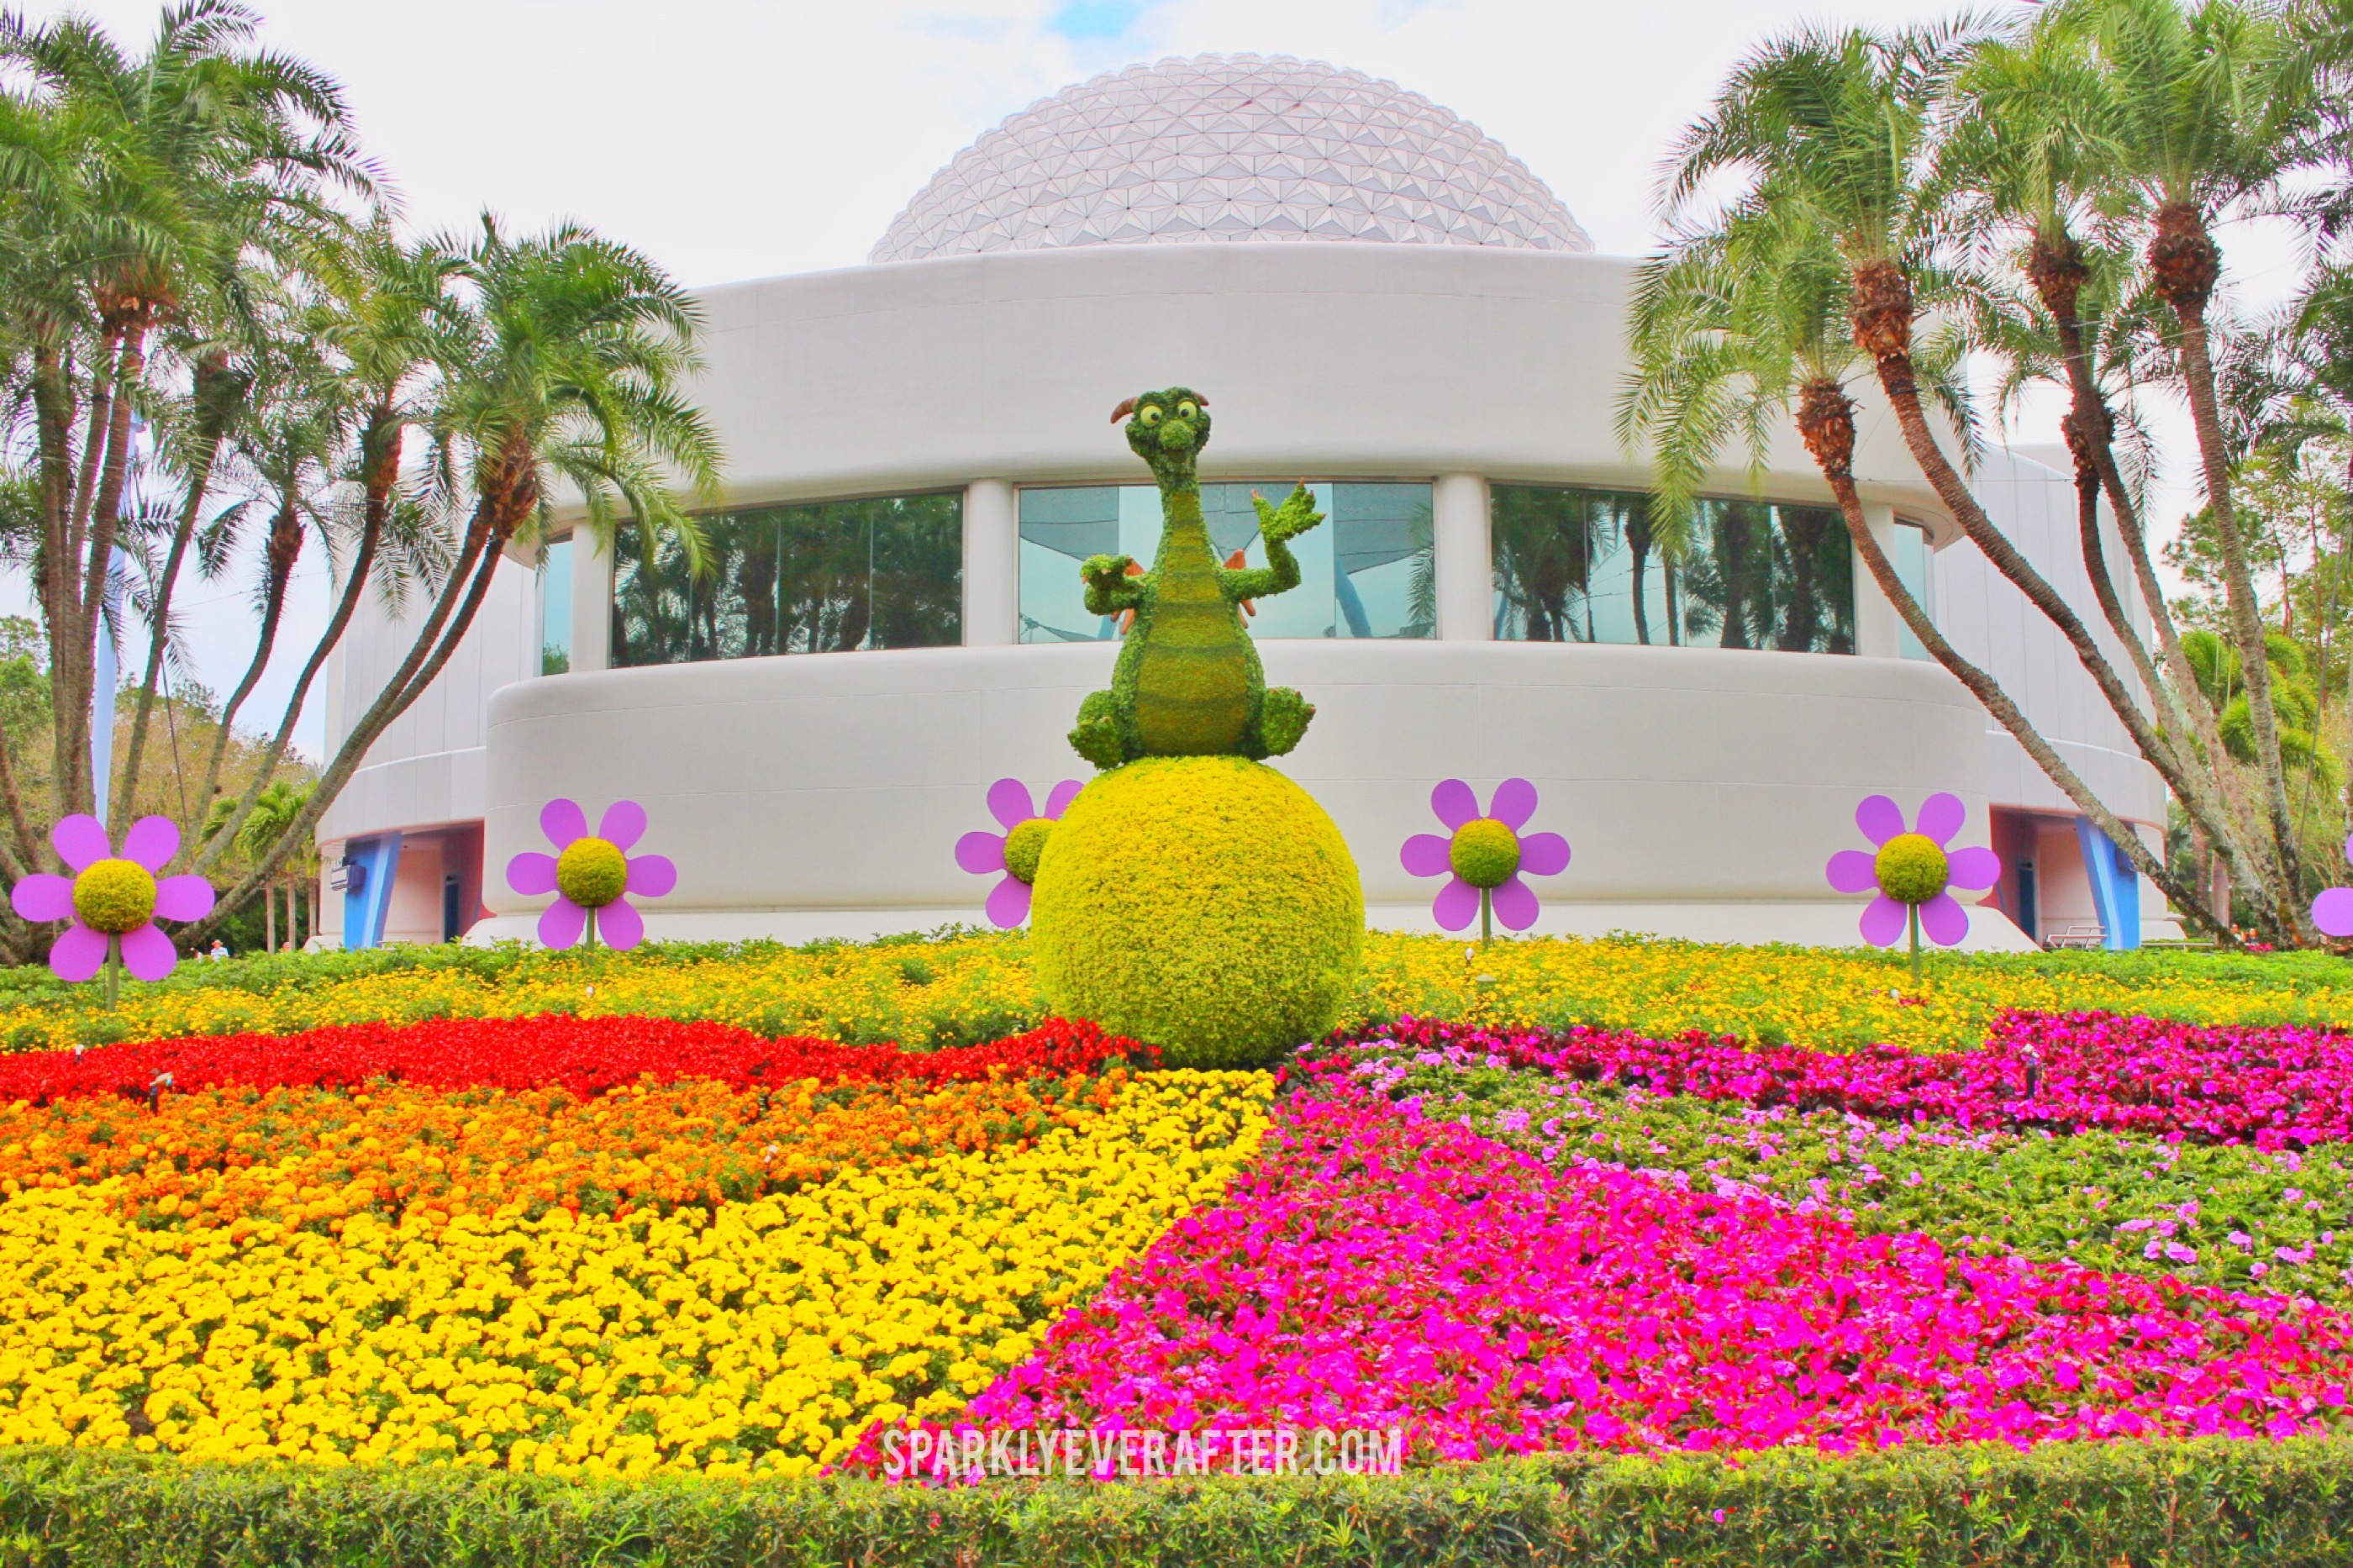 Epcot Flower and Garden Festival 2017